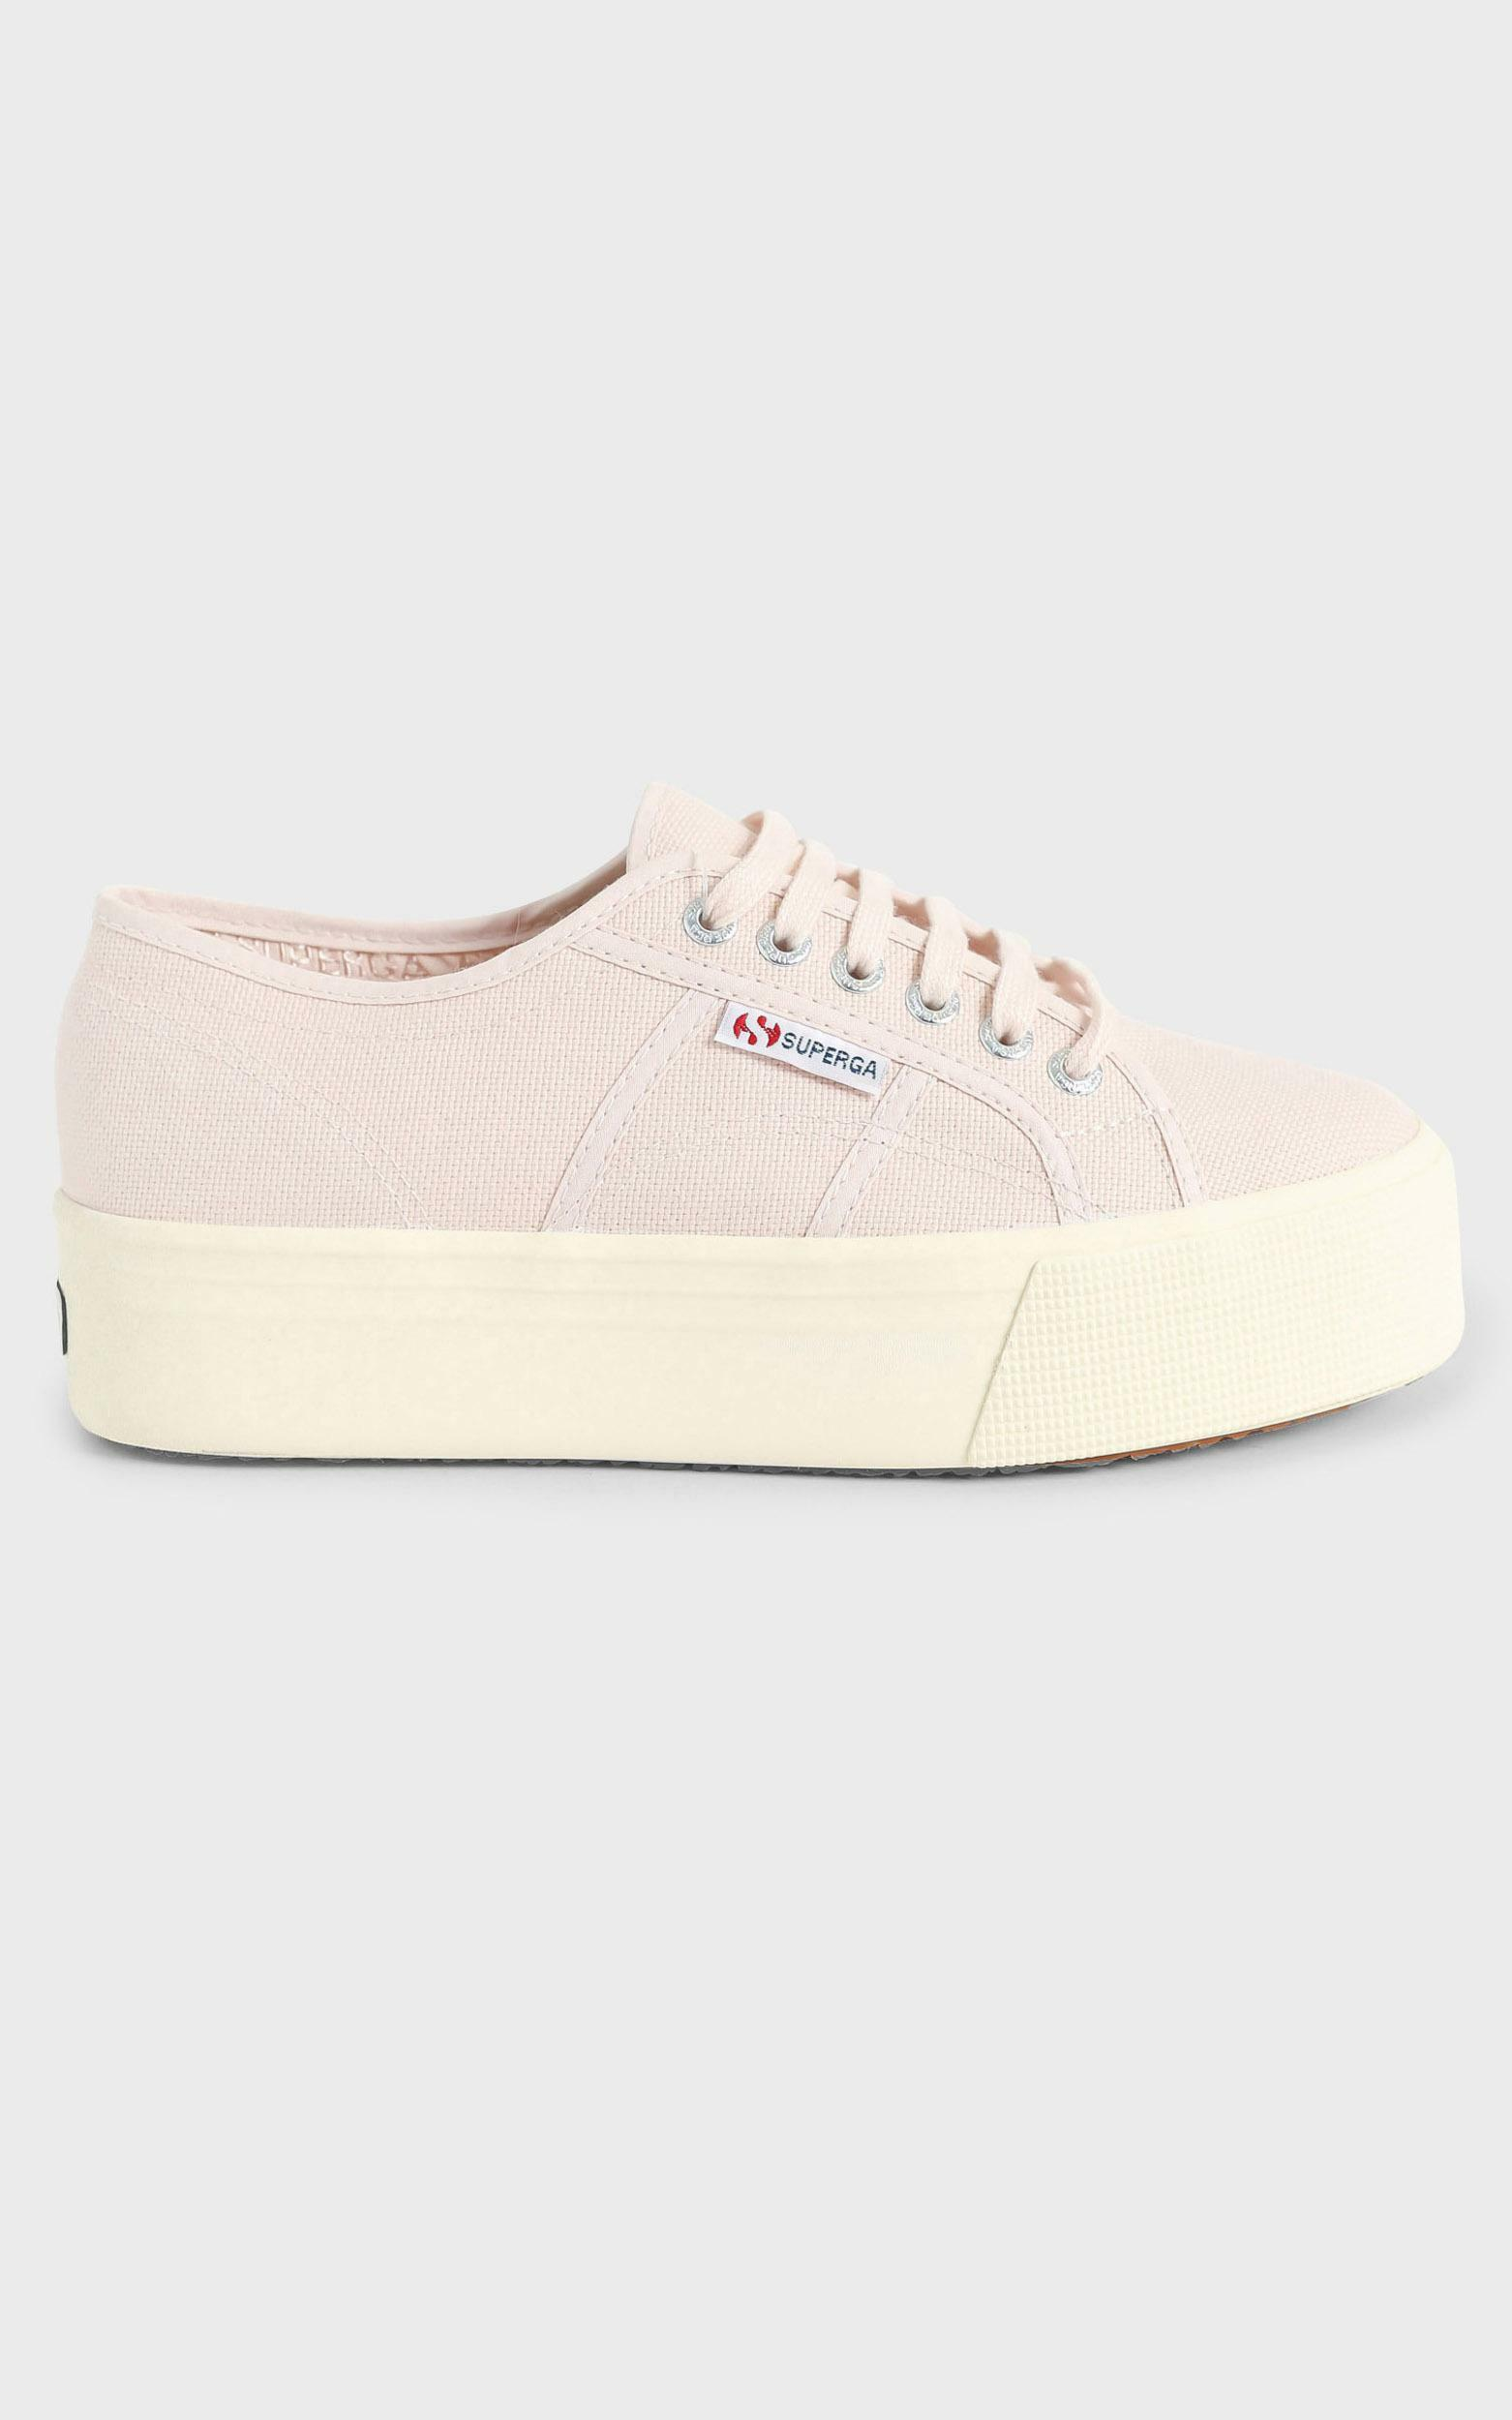 Superga - 2790 ACOTW Linea Up and Down Platform Sneaker in pink peach blush - off white - 5, Beige, hi-res image number null